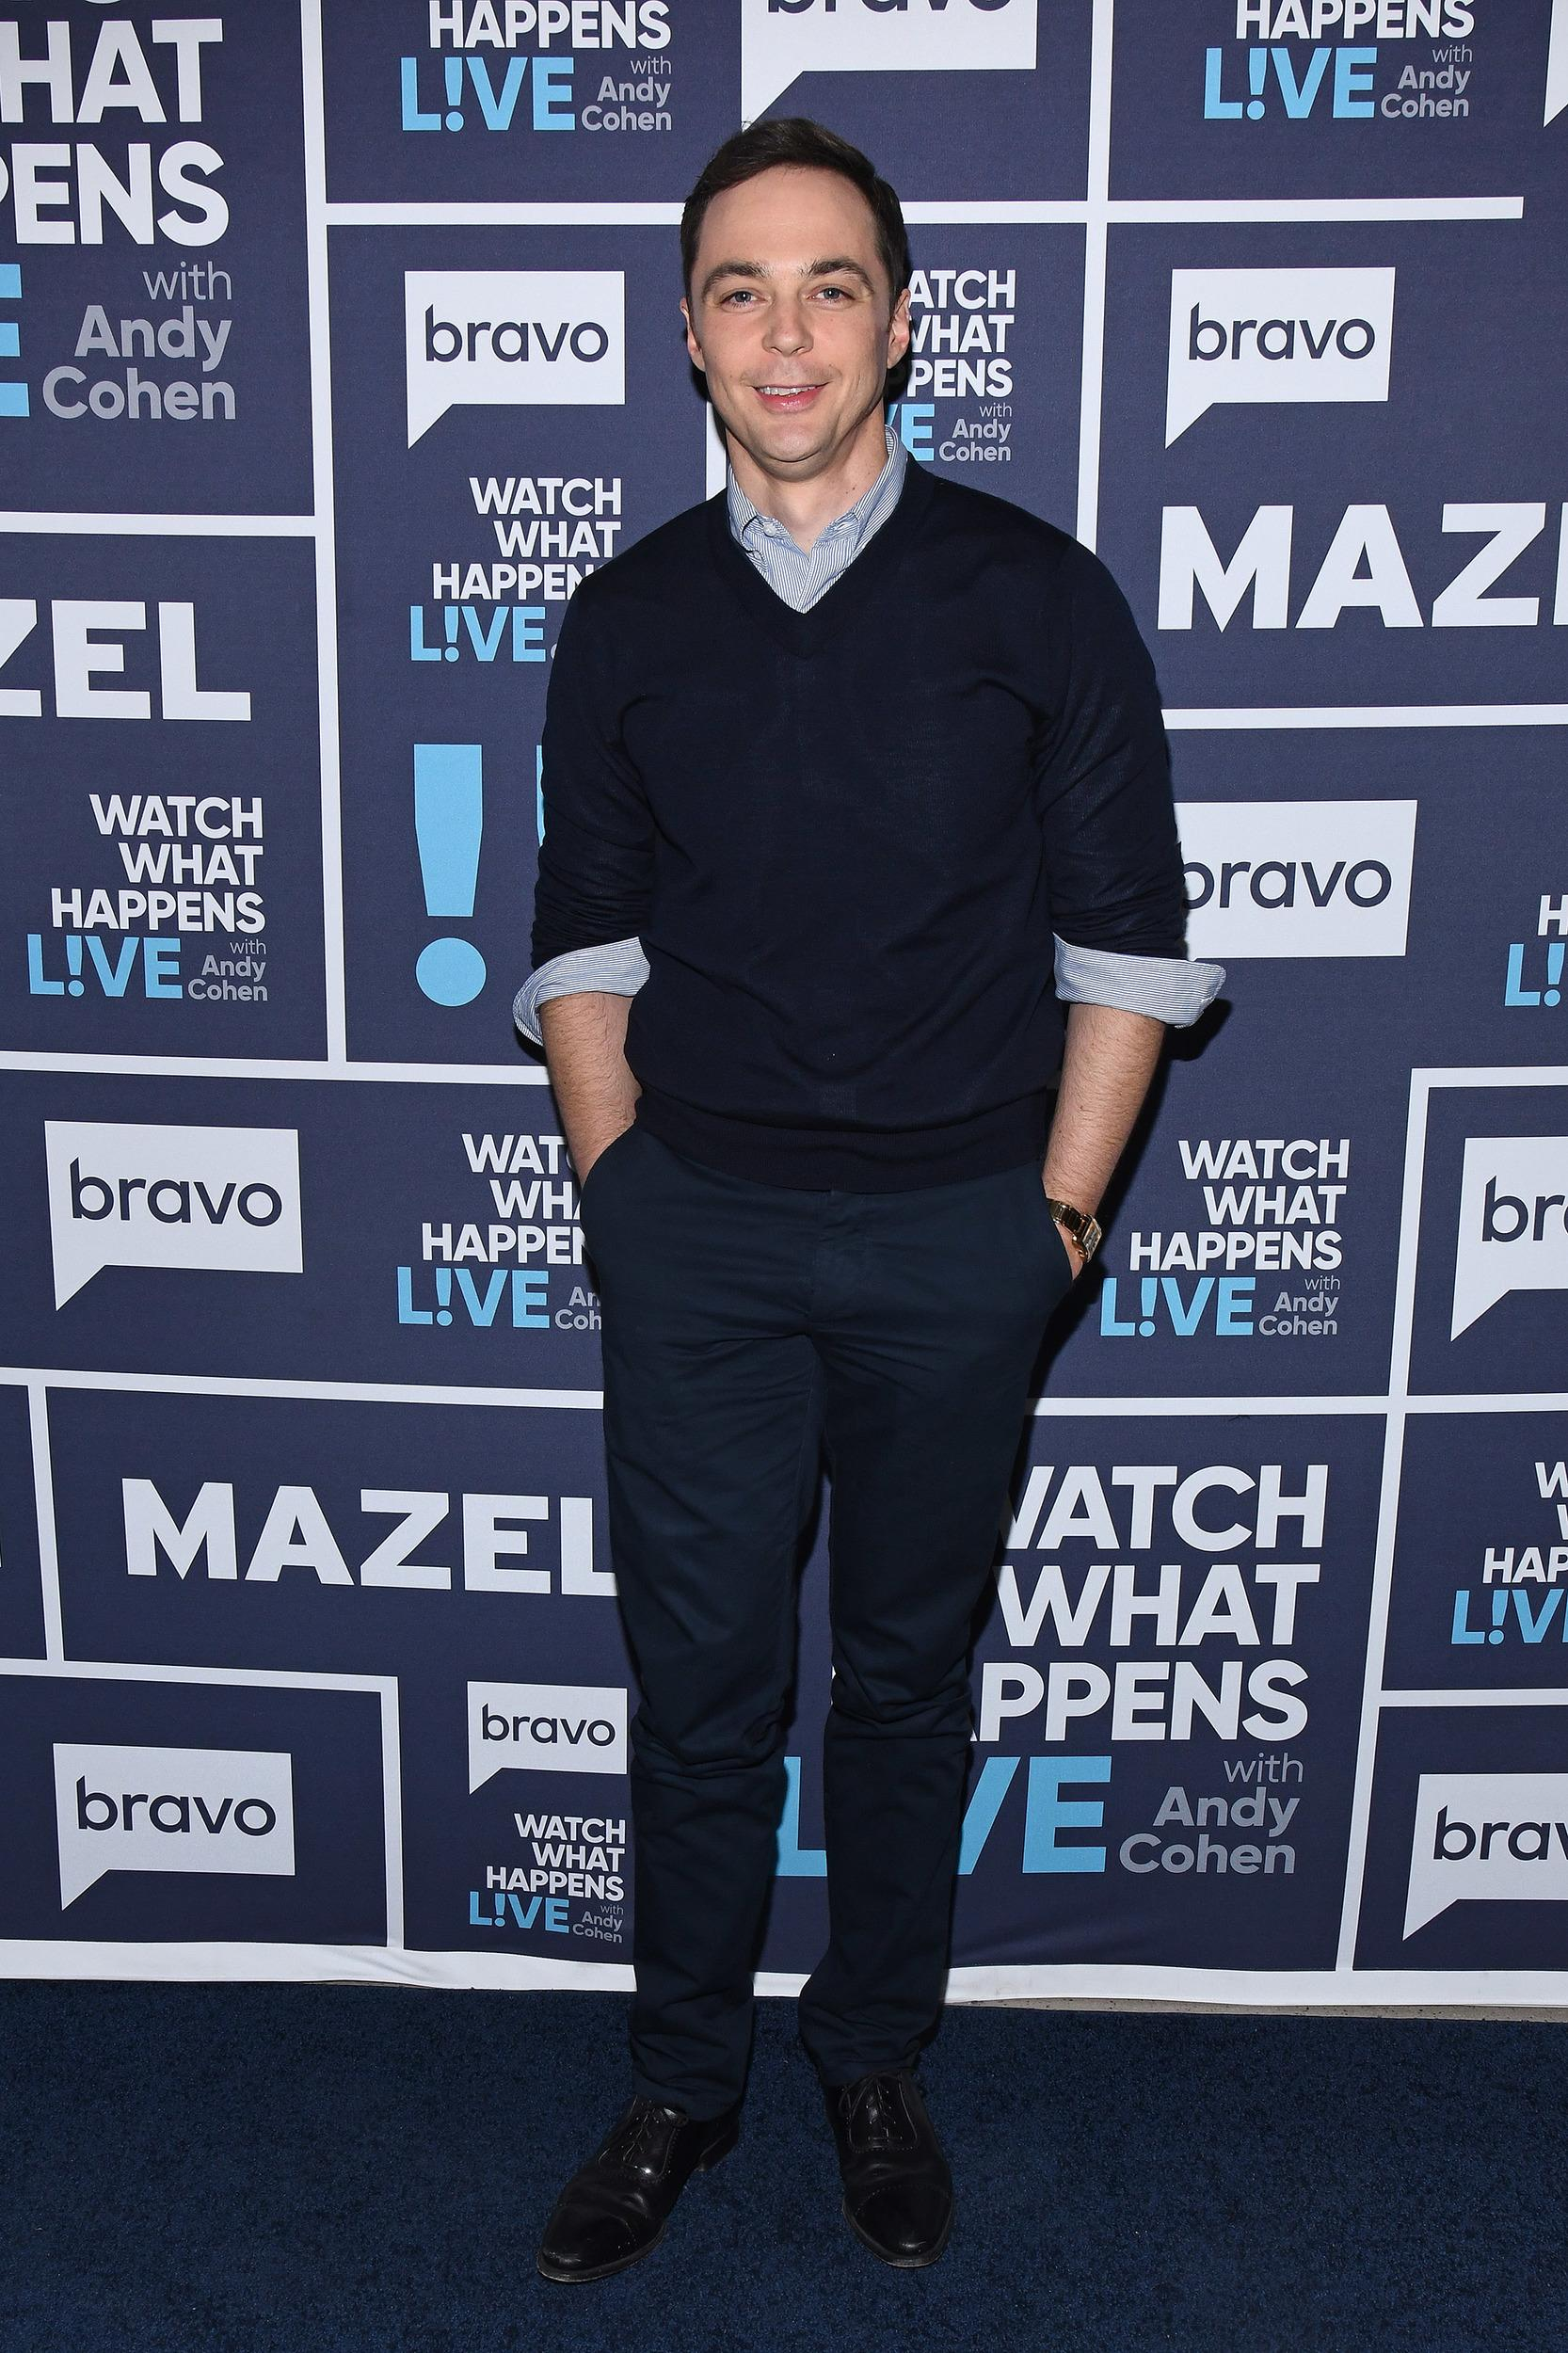 WATCH WHAT HAPPENS LIVE WITH ANDY COHEN -- Pictured: Jim Parsons -- (Photo by: Charles Sykes/Bravo/NBCU Photo Bank via Getty Images)